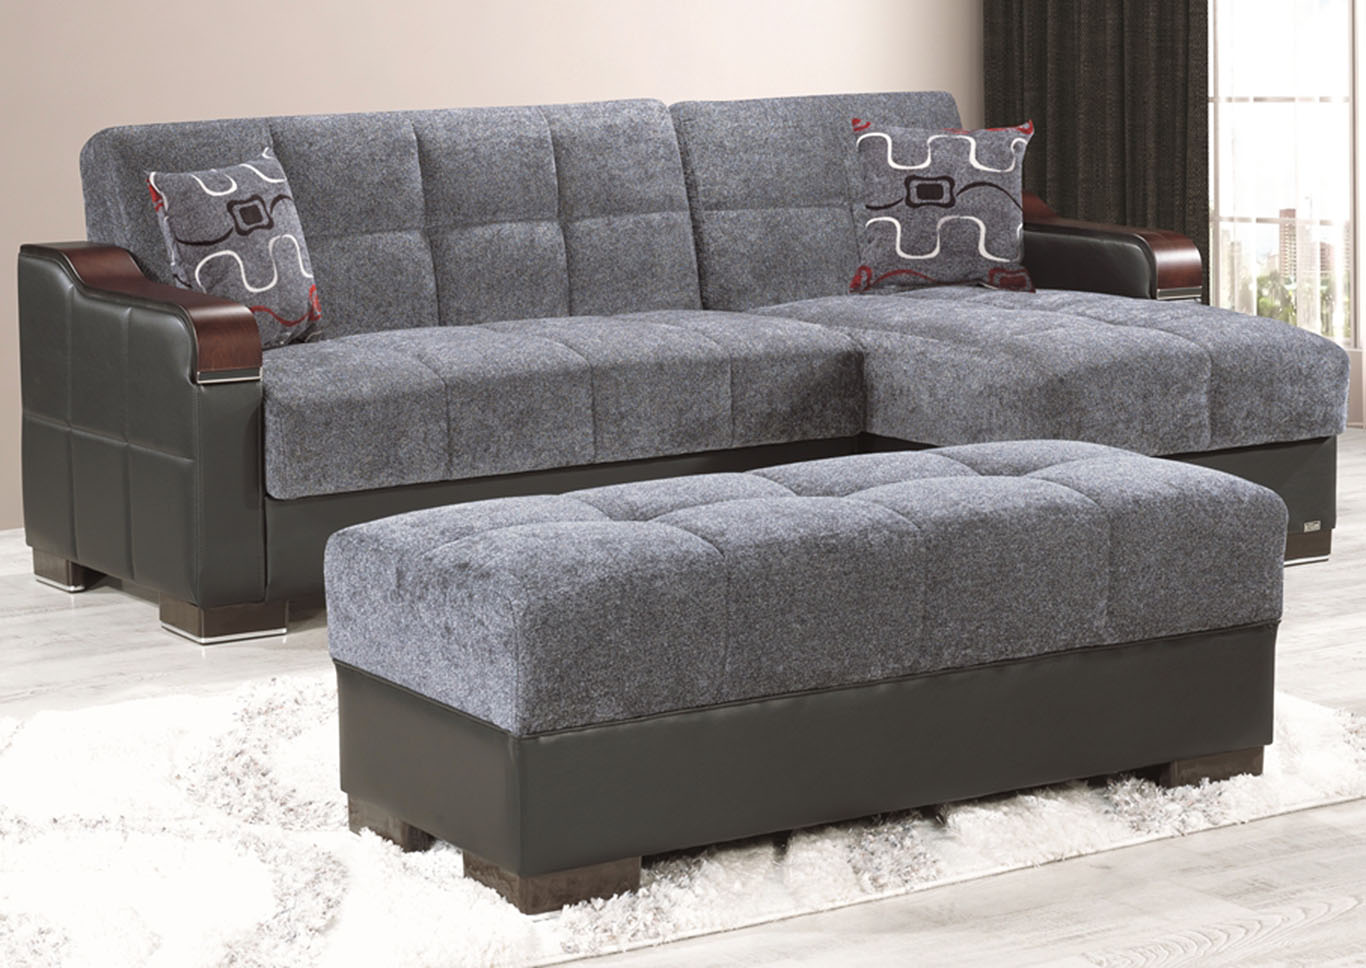 Downtown Gray Fabric Chenille Ottoman,CasaMode Functional Furniture